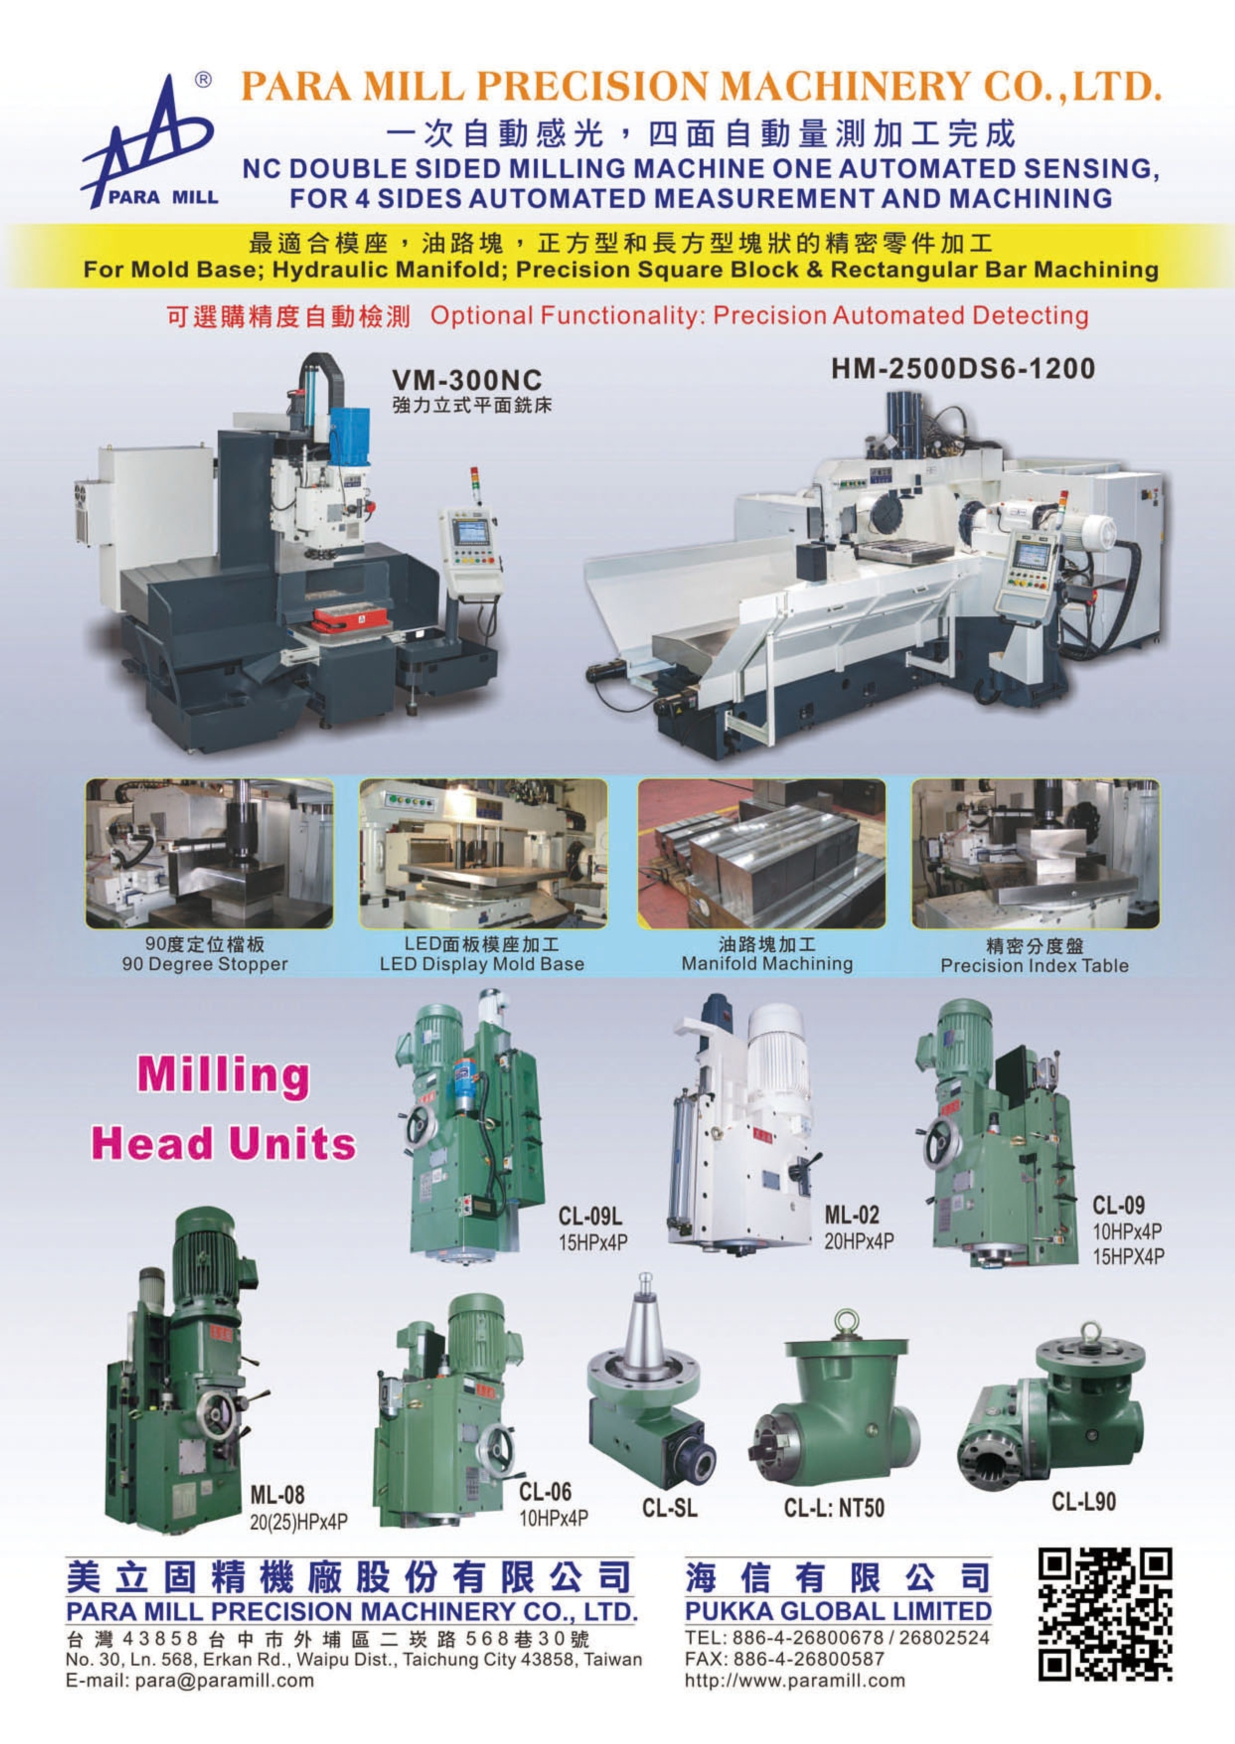 Who Makes Machinery in Taiwan PARA MILL PRECISION MACHINERY CO., LTD.PUKKA GLOBAL LIMITED